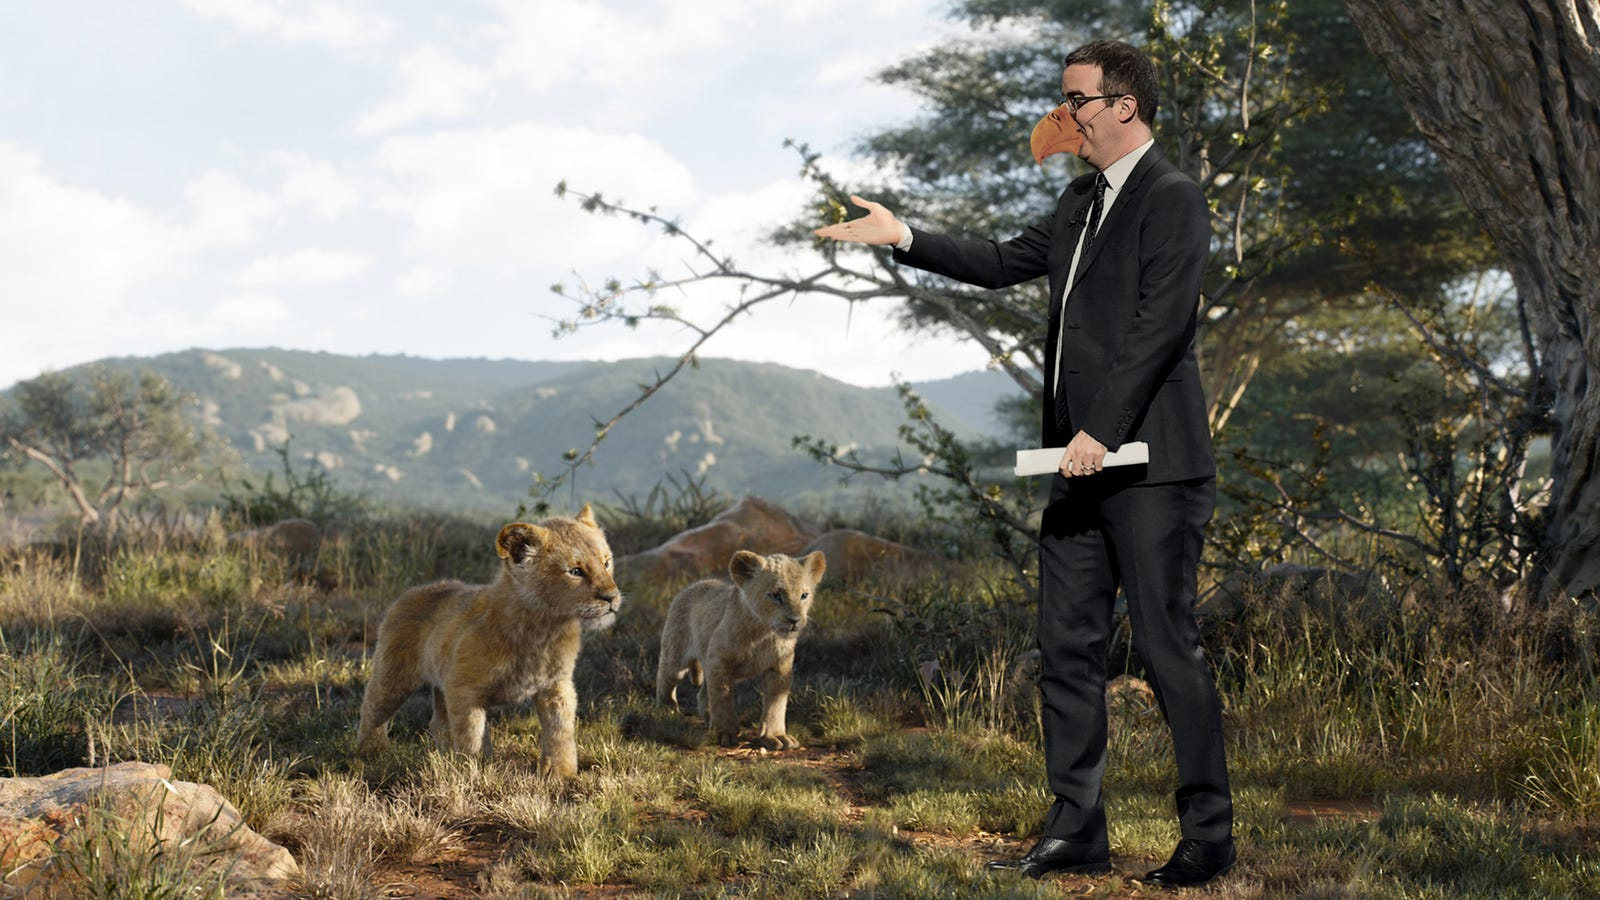 John Oliver Annoyed After Discovering He The Only Non-CGI Character In 'Lion King' Remake